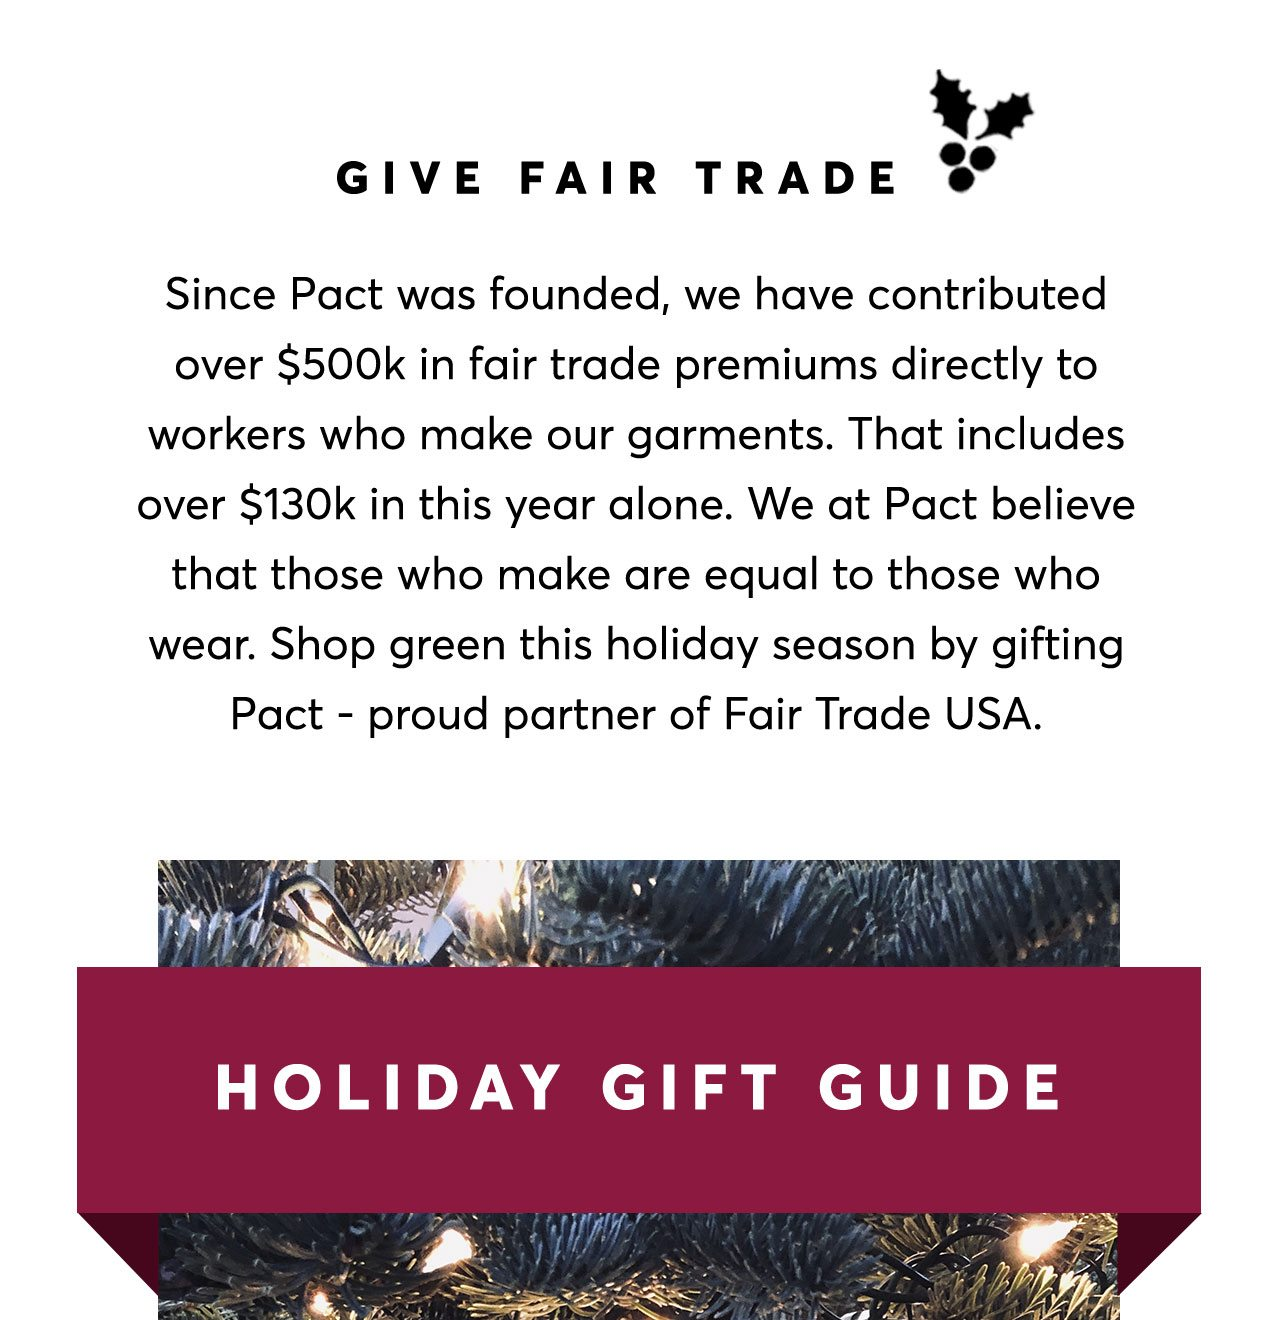 Give Fair Trade: Since Pact was founded, we have contributed over $500k in fair trade premiums directly to workers that make our garments. Shop green this hoiday season by gifting Pact—proud partner of Fair Trade USA.